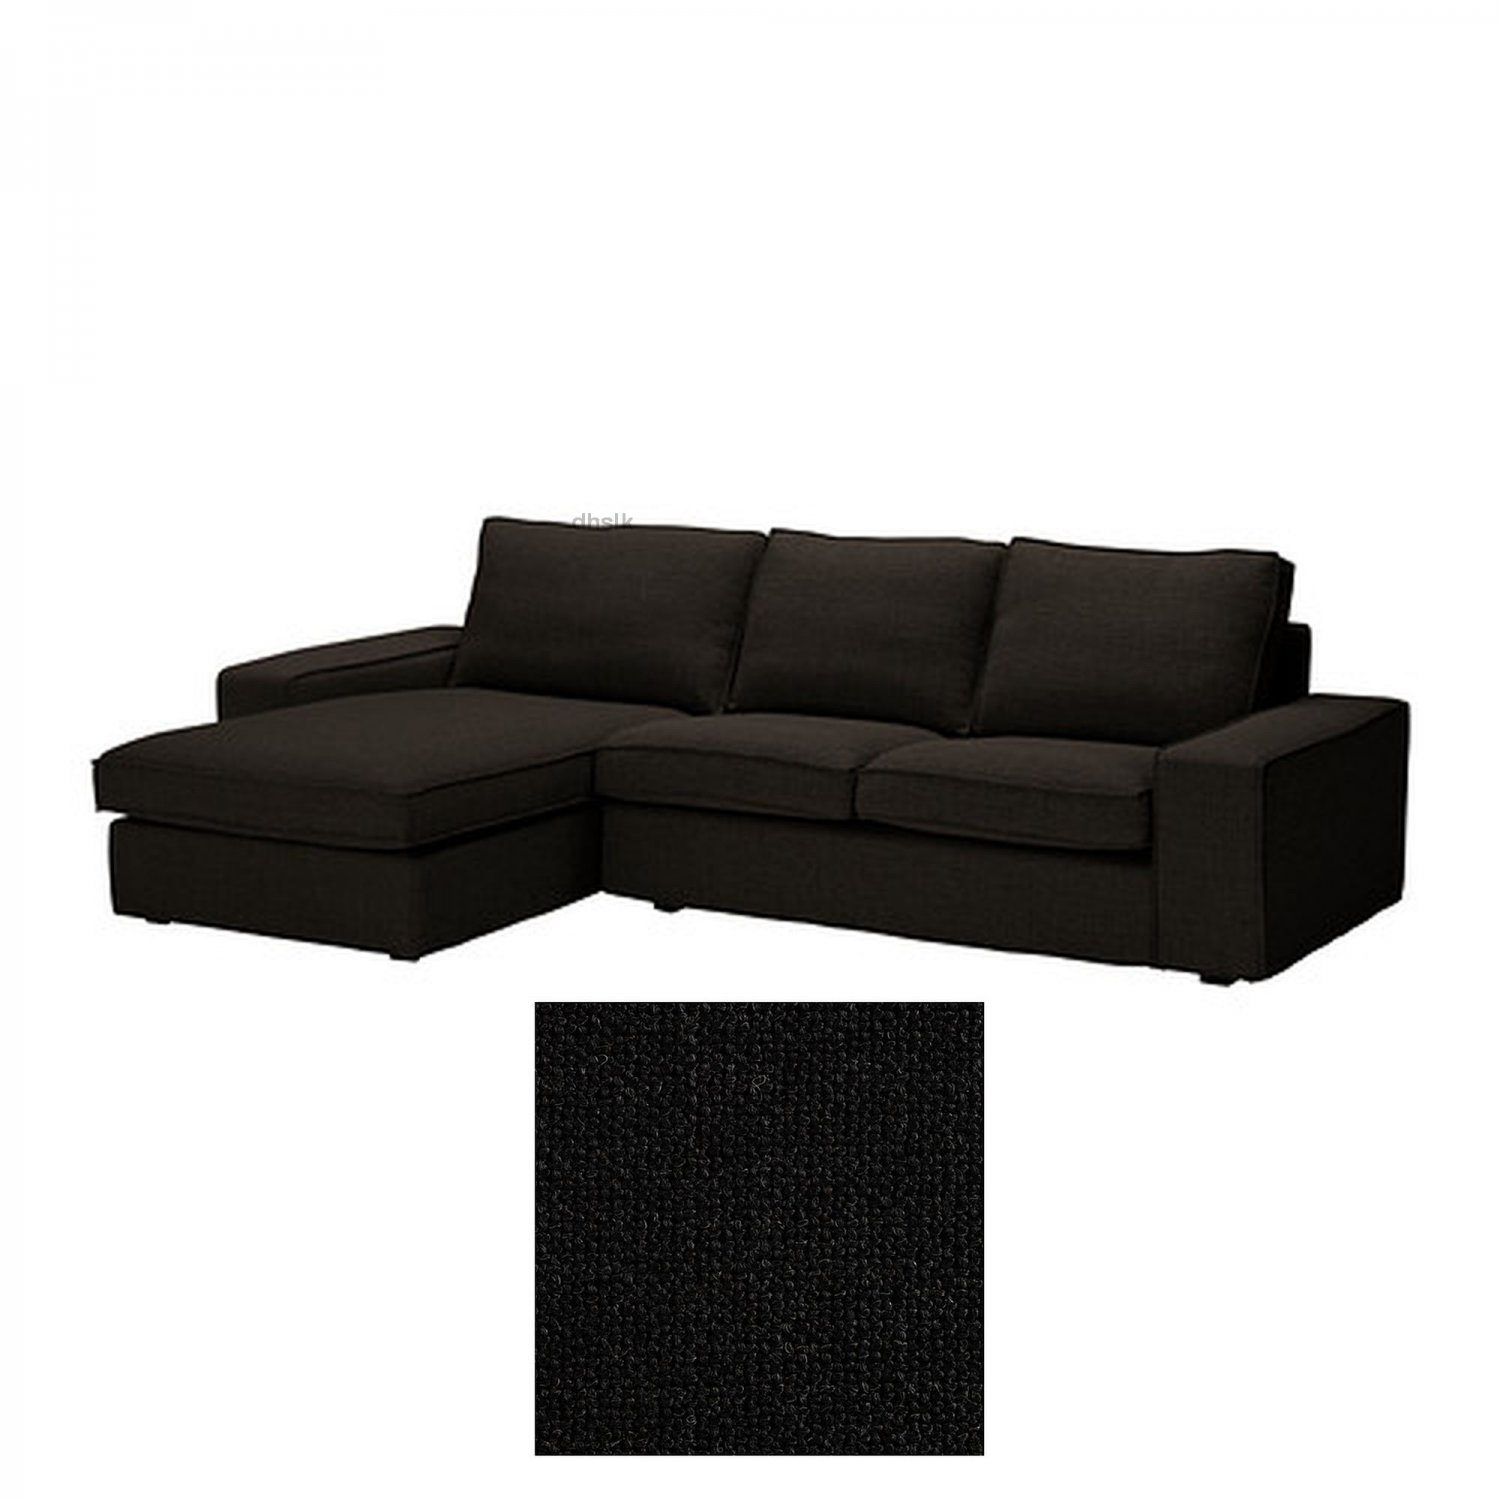 Ikea Kivik 2 Seat Loveseat Sofa W Chaise Longue Slipcover